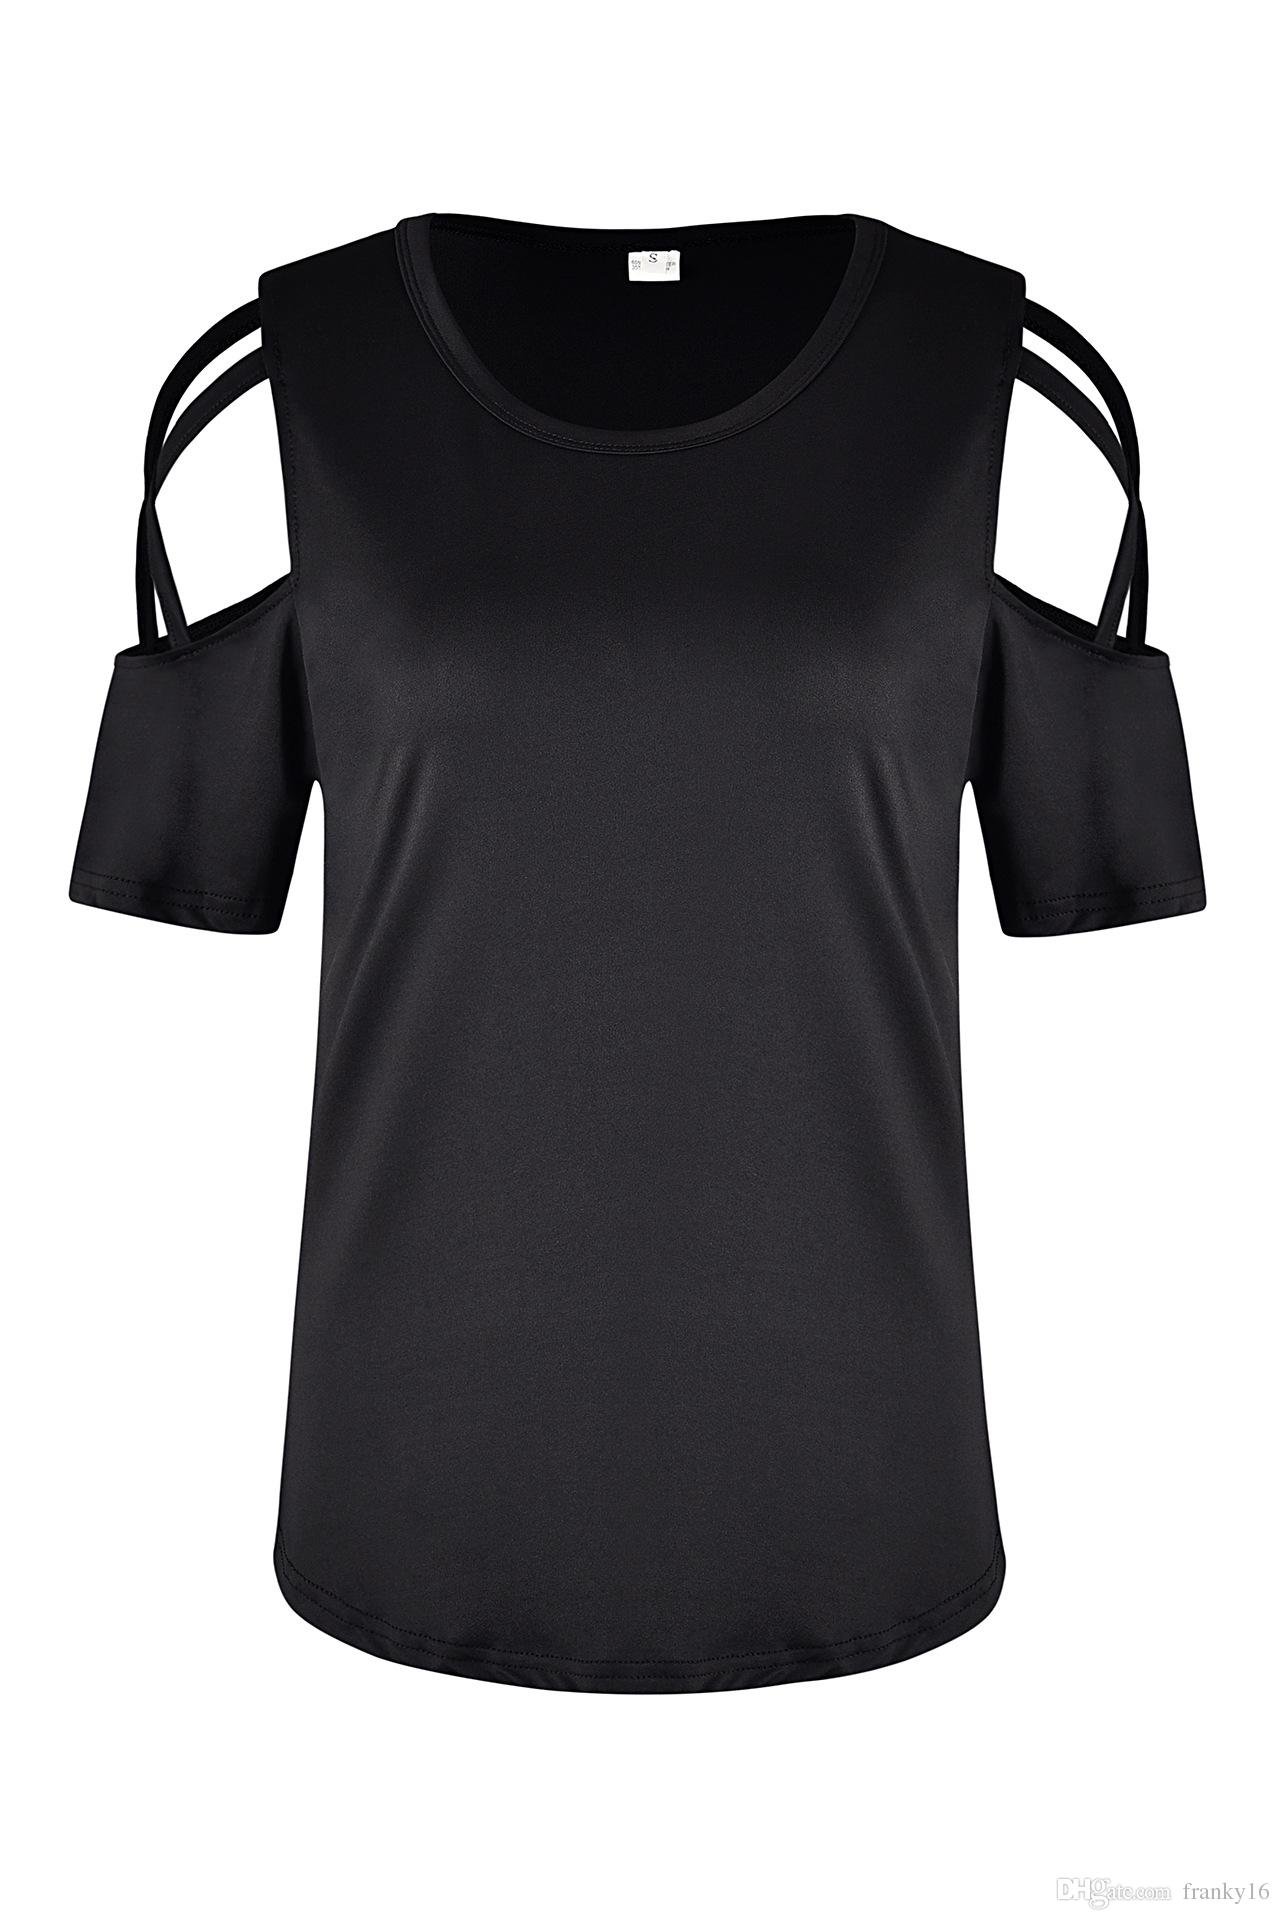 2018 Summer New Fashion Women's T Shirt Short Sleeve Solid Hole Strap Casual Cotton T-shirt Females Tops Size S-2XL